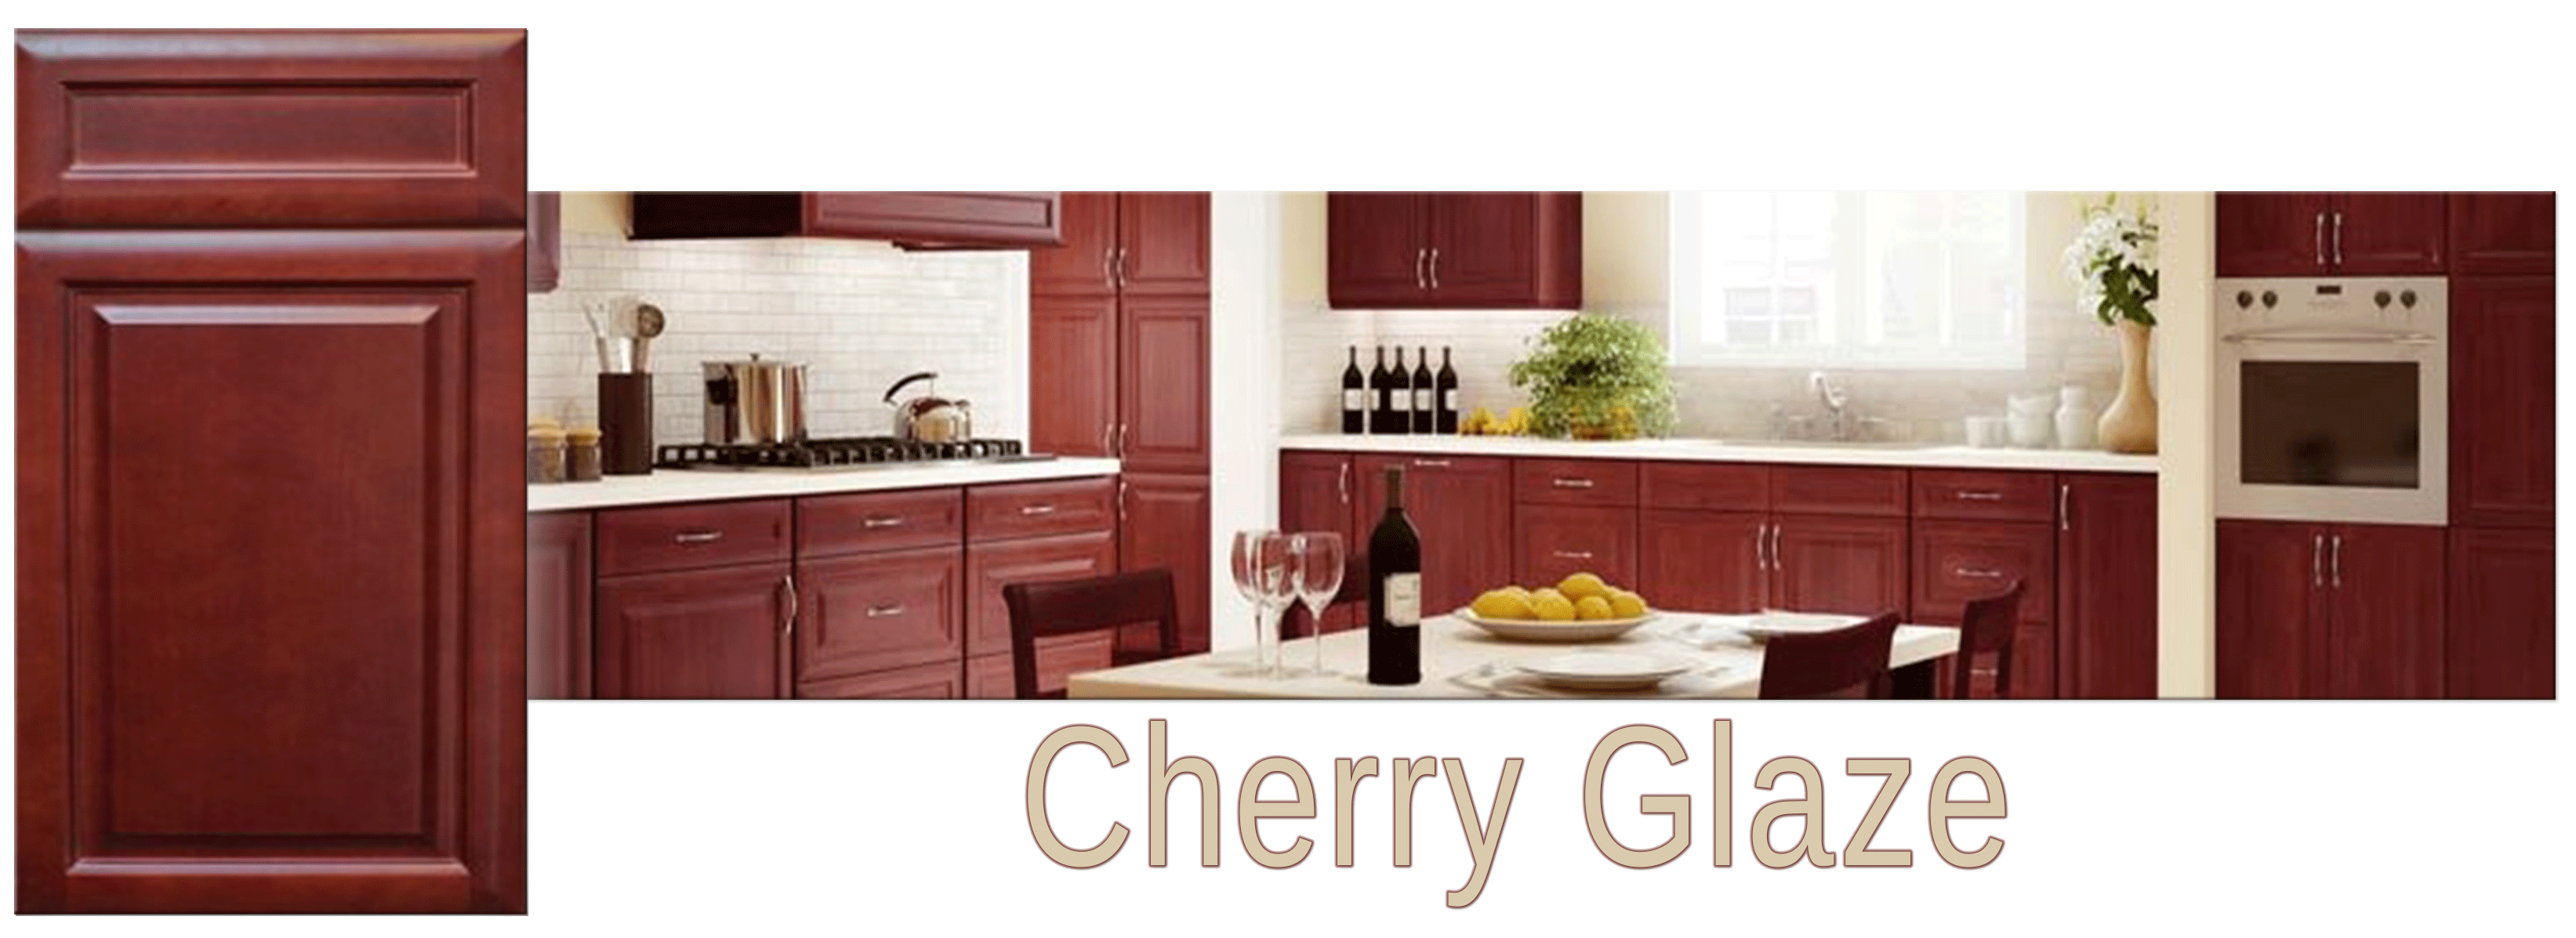 A Classic Look And The Ever Popular Cherry Color Create An Eye Catching  Combination. Forevermark Cherry Glaze Features Raised Main Panels And  Recessed ...